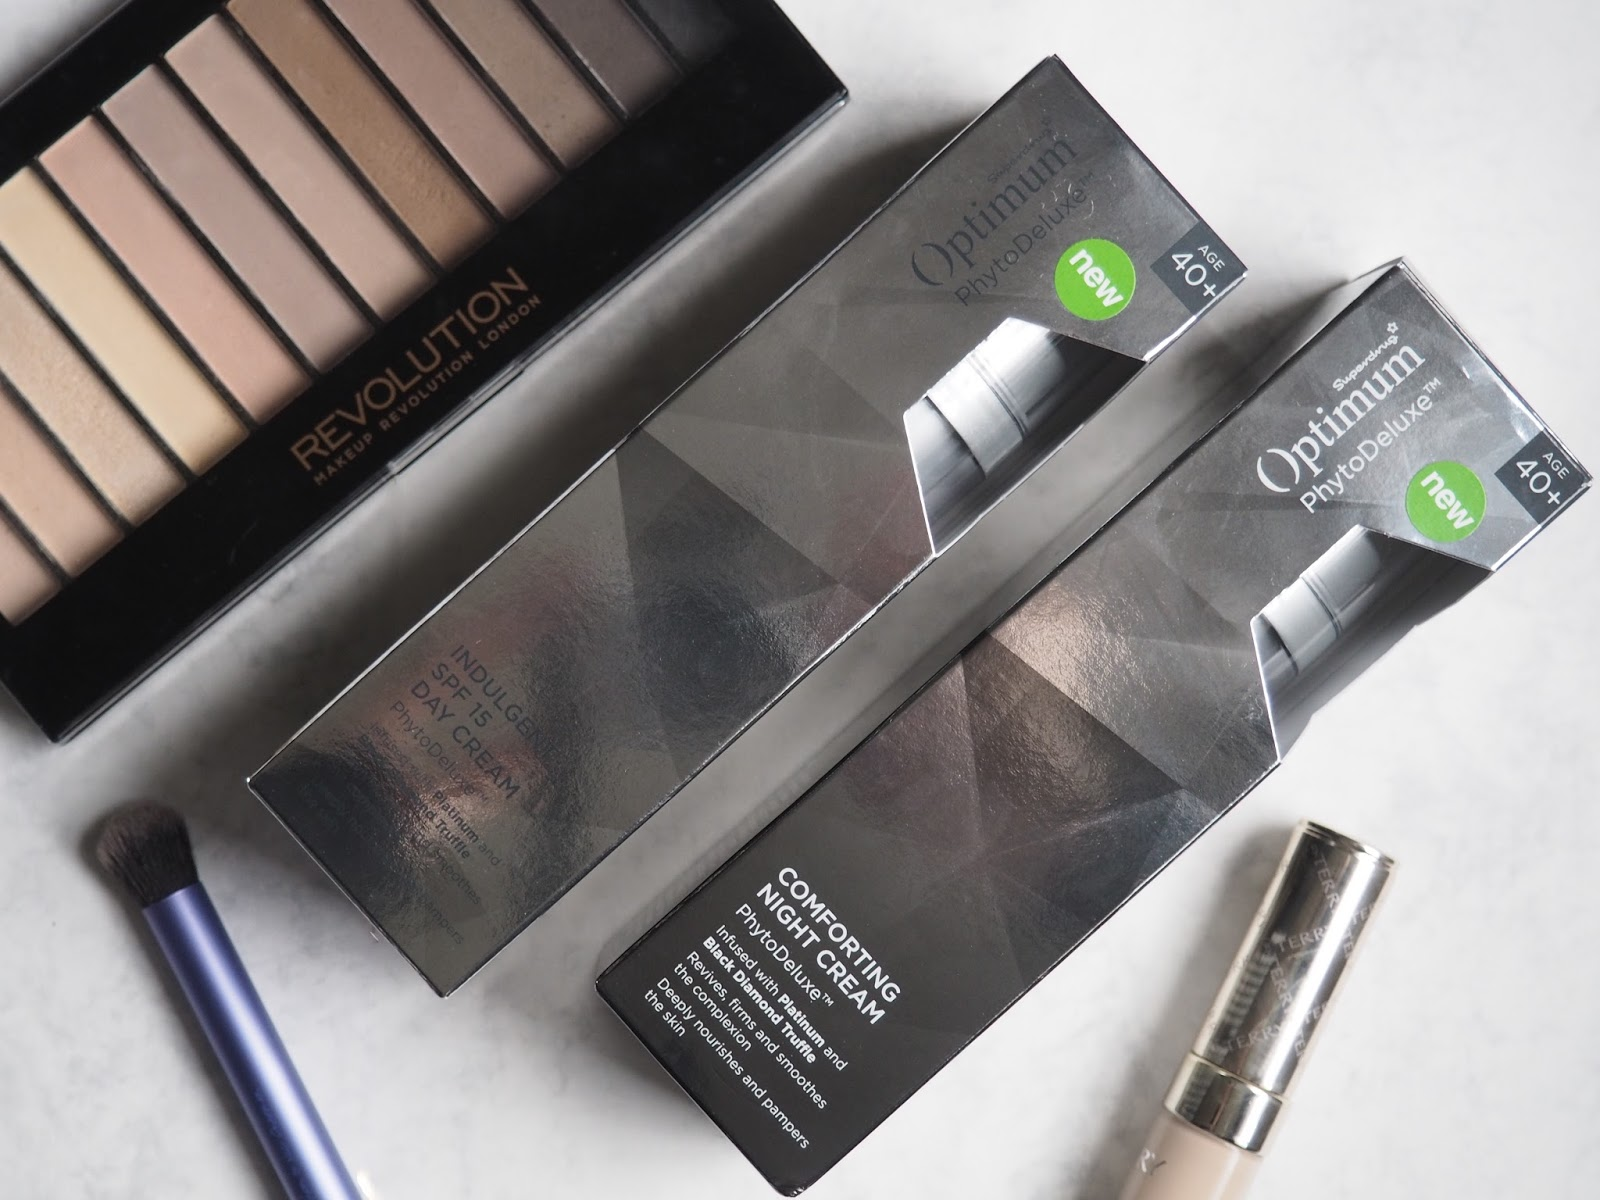 Optimum Phytodeluxe Range Review Priceless Life Of Mine Eyeliner Black As We Age Our Skin And Its Needs Change Woman Are Often On The Hunt For A Great Moisturiser To Help Revive Their